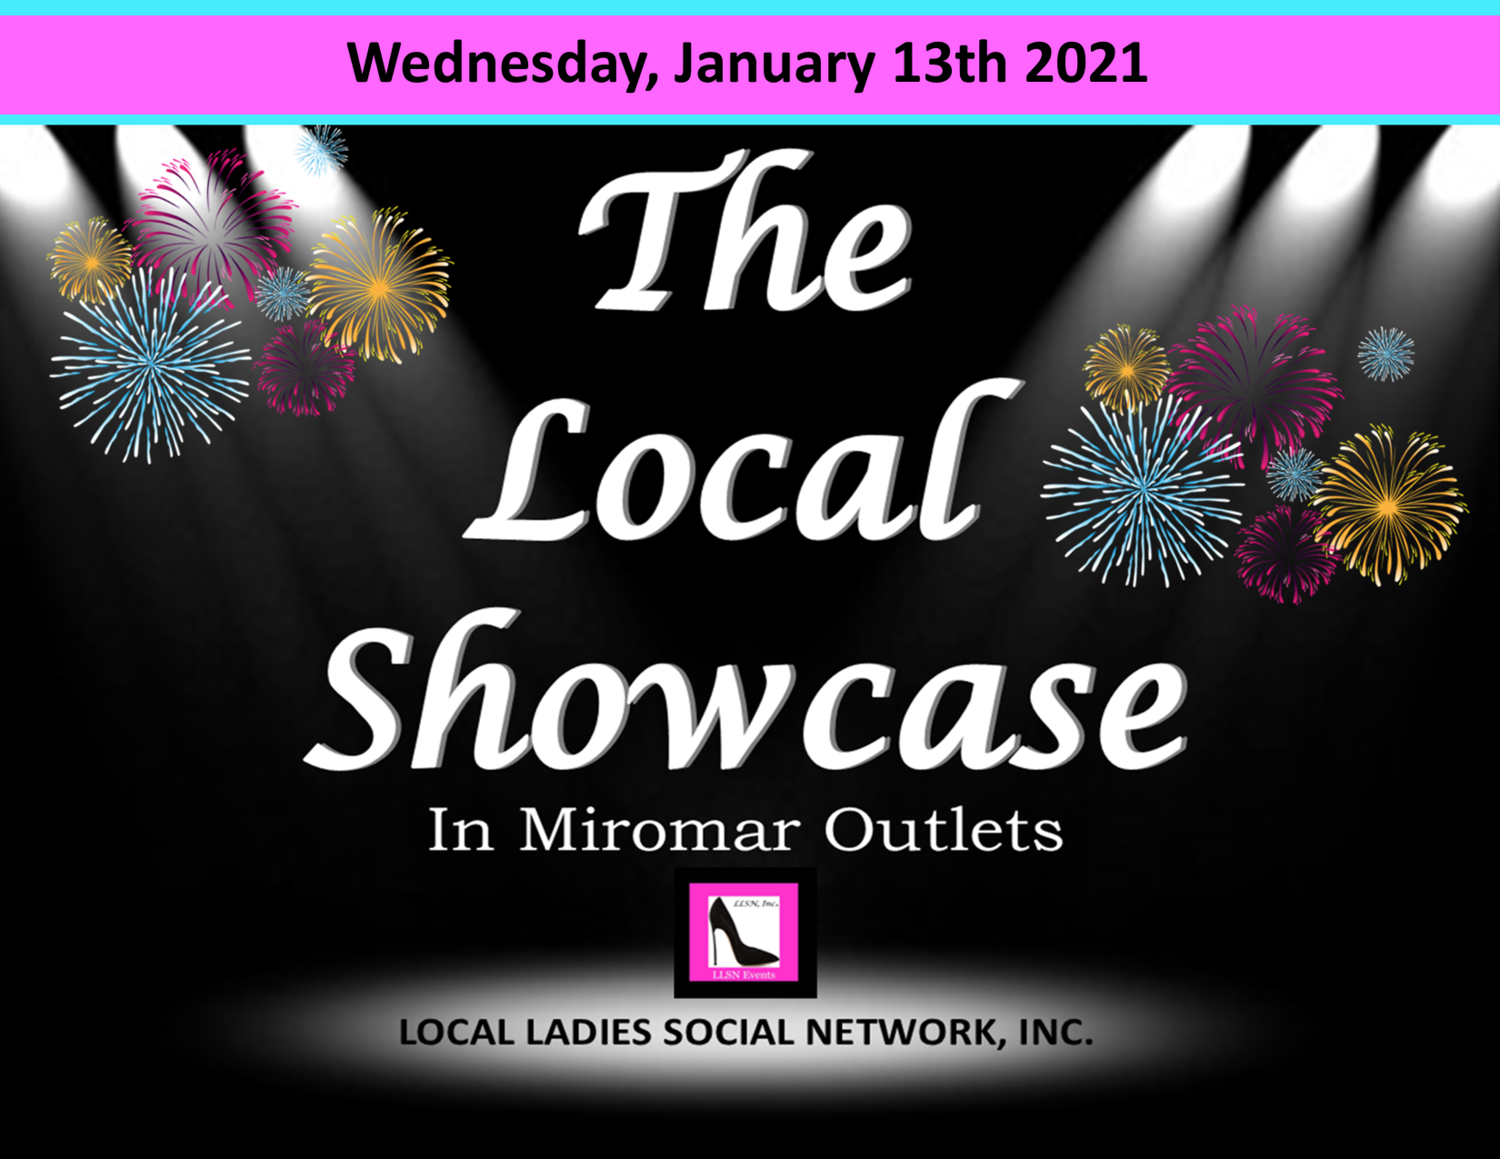 Wednesday, January 13th 11am-7pm